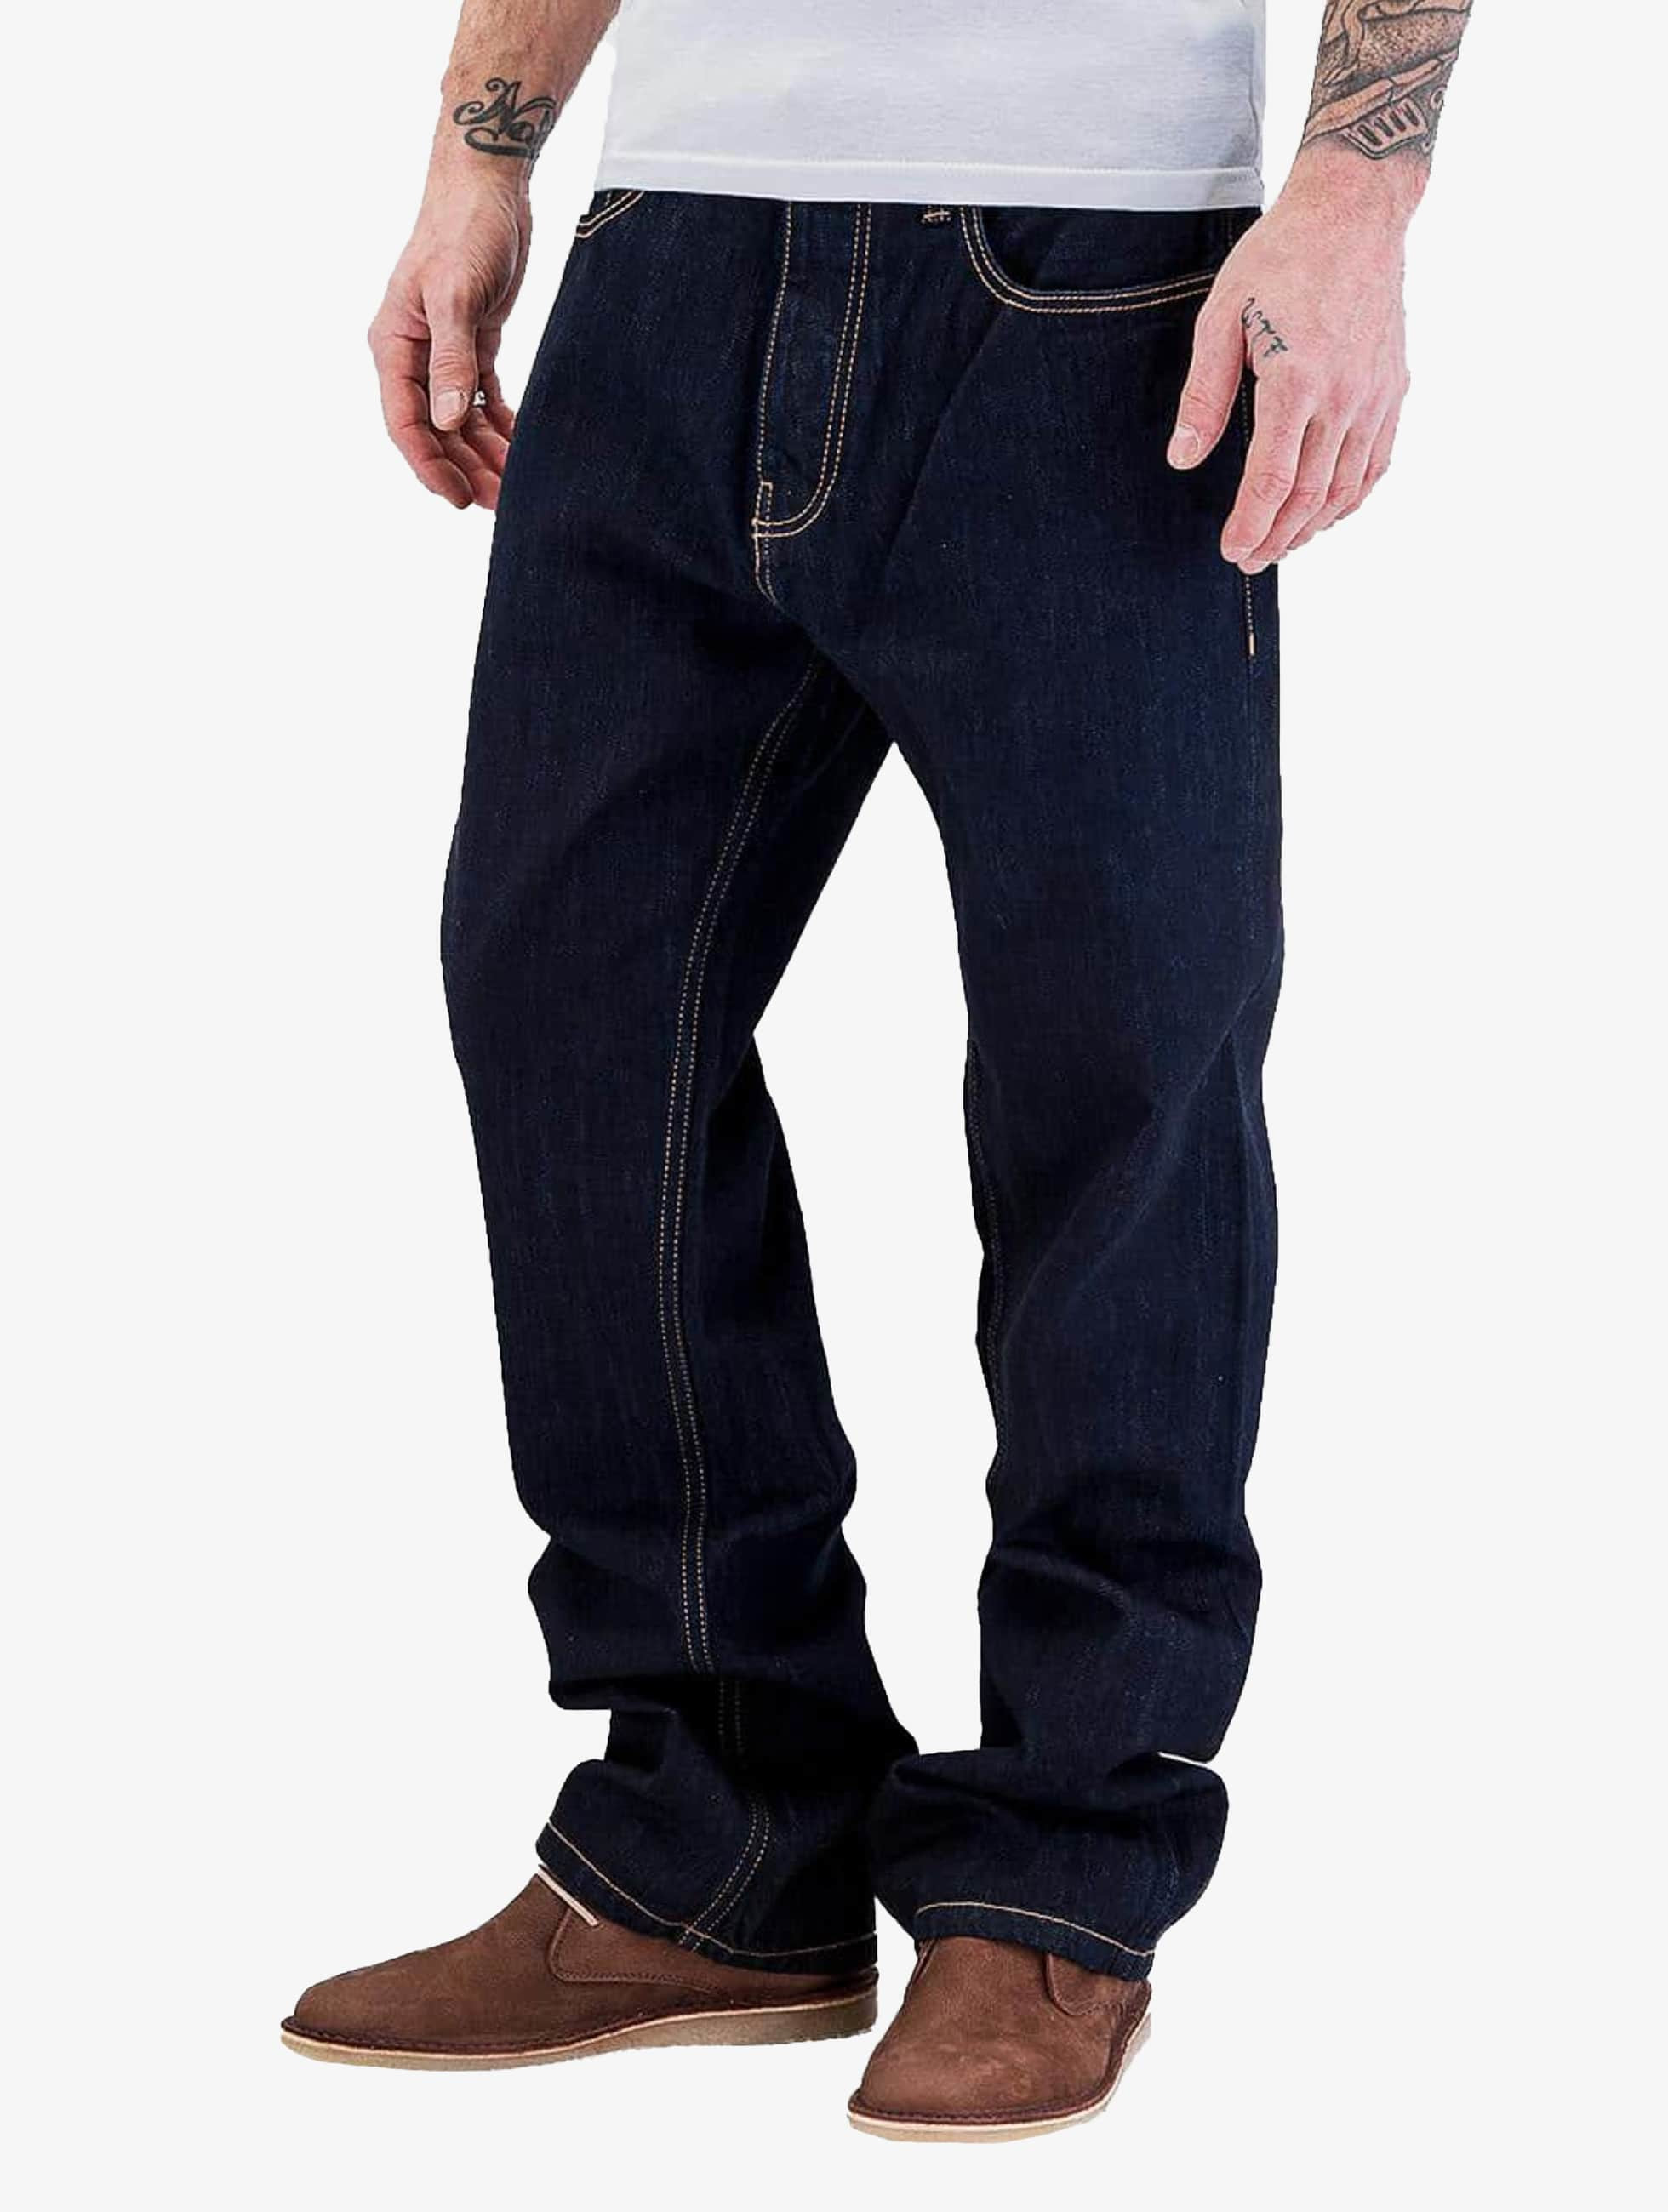 Shop the Latest Collection of Loose Fit Jeans for Men Online at coolmfilehj.cf FREE SHIPPING AVAILABLE!